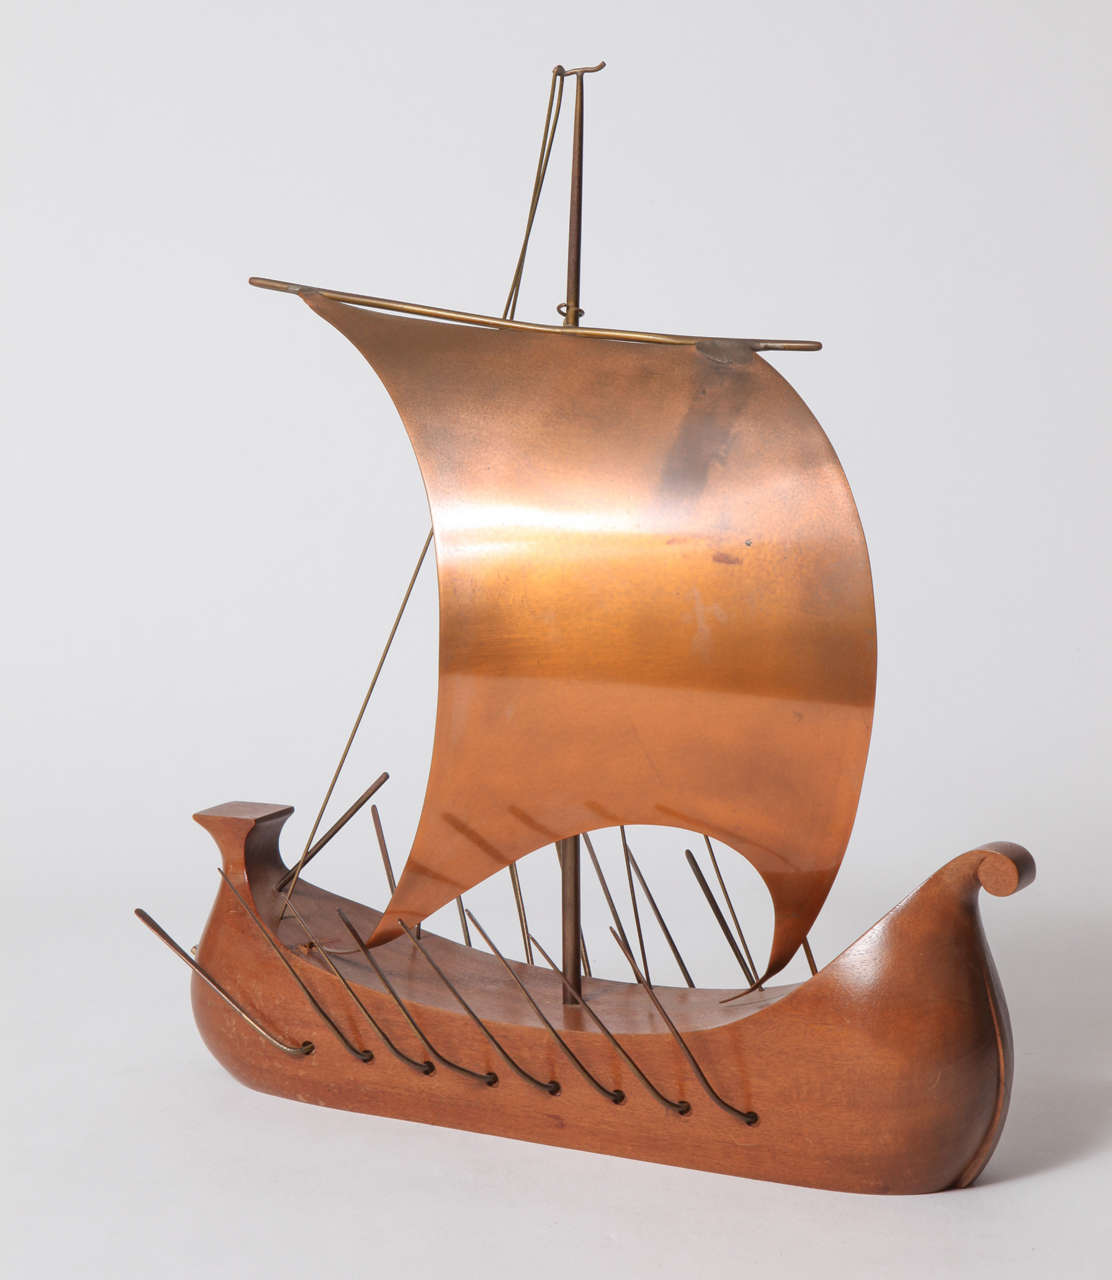 Hagenauer wood brass and copper viking ship for sale at